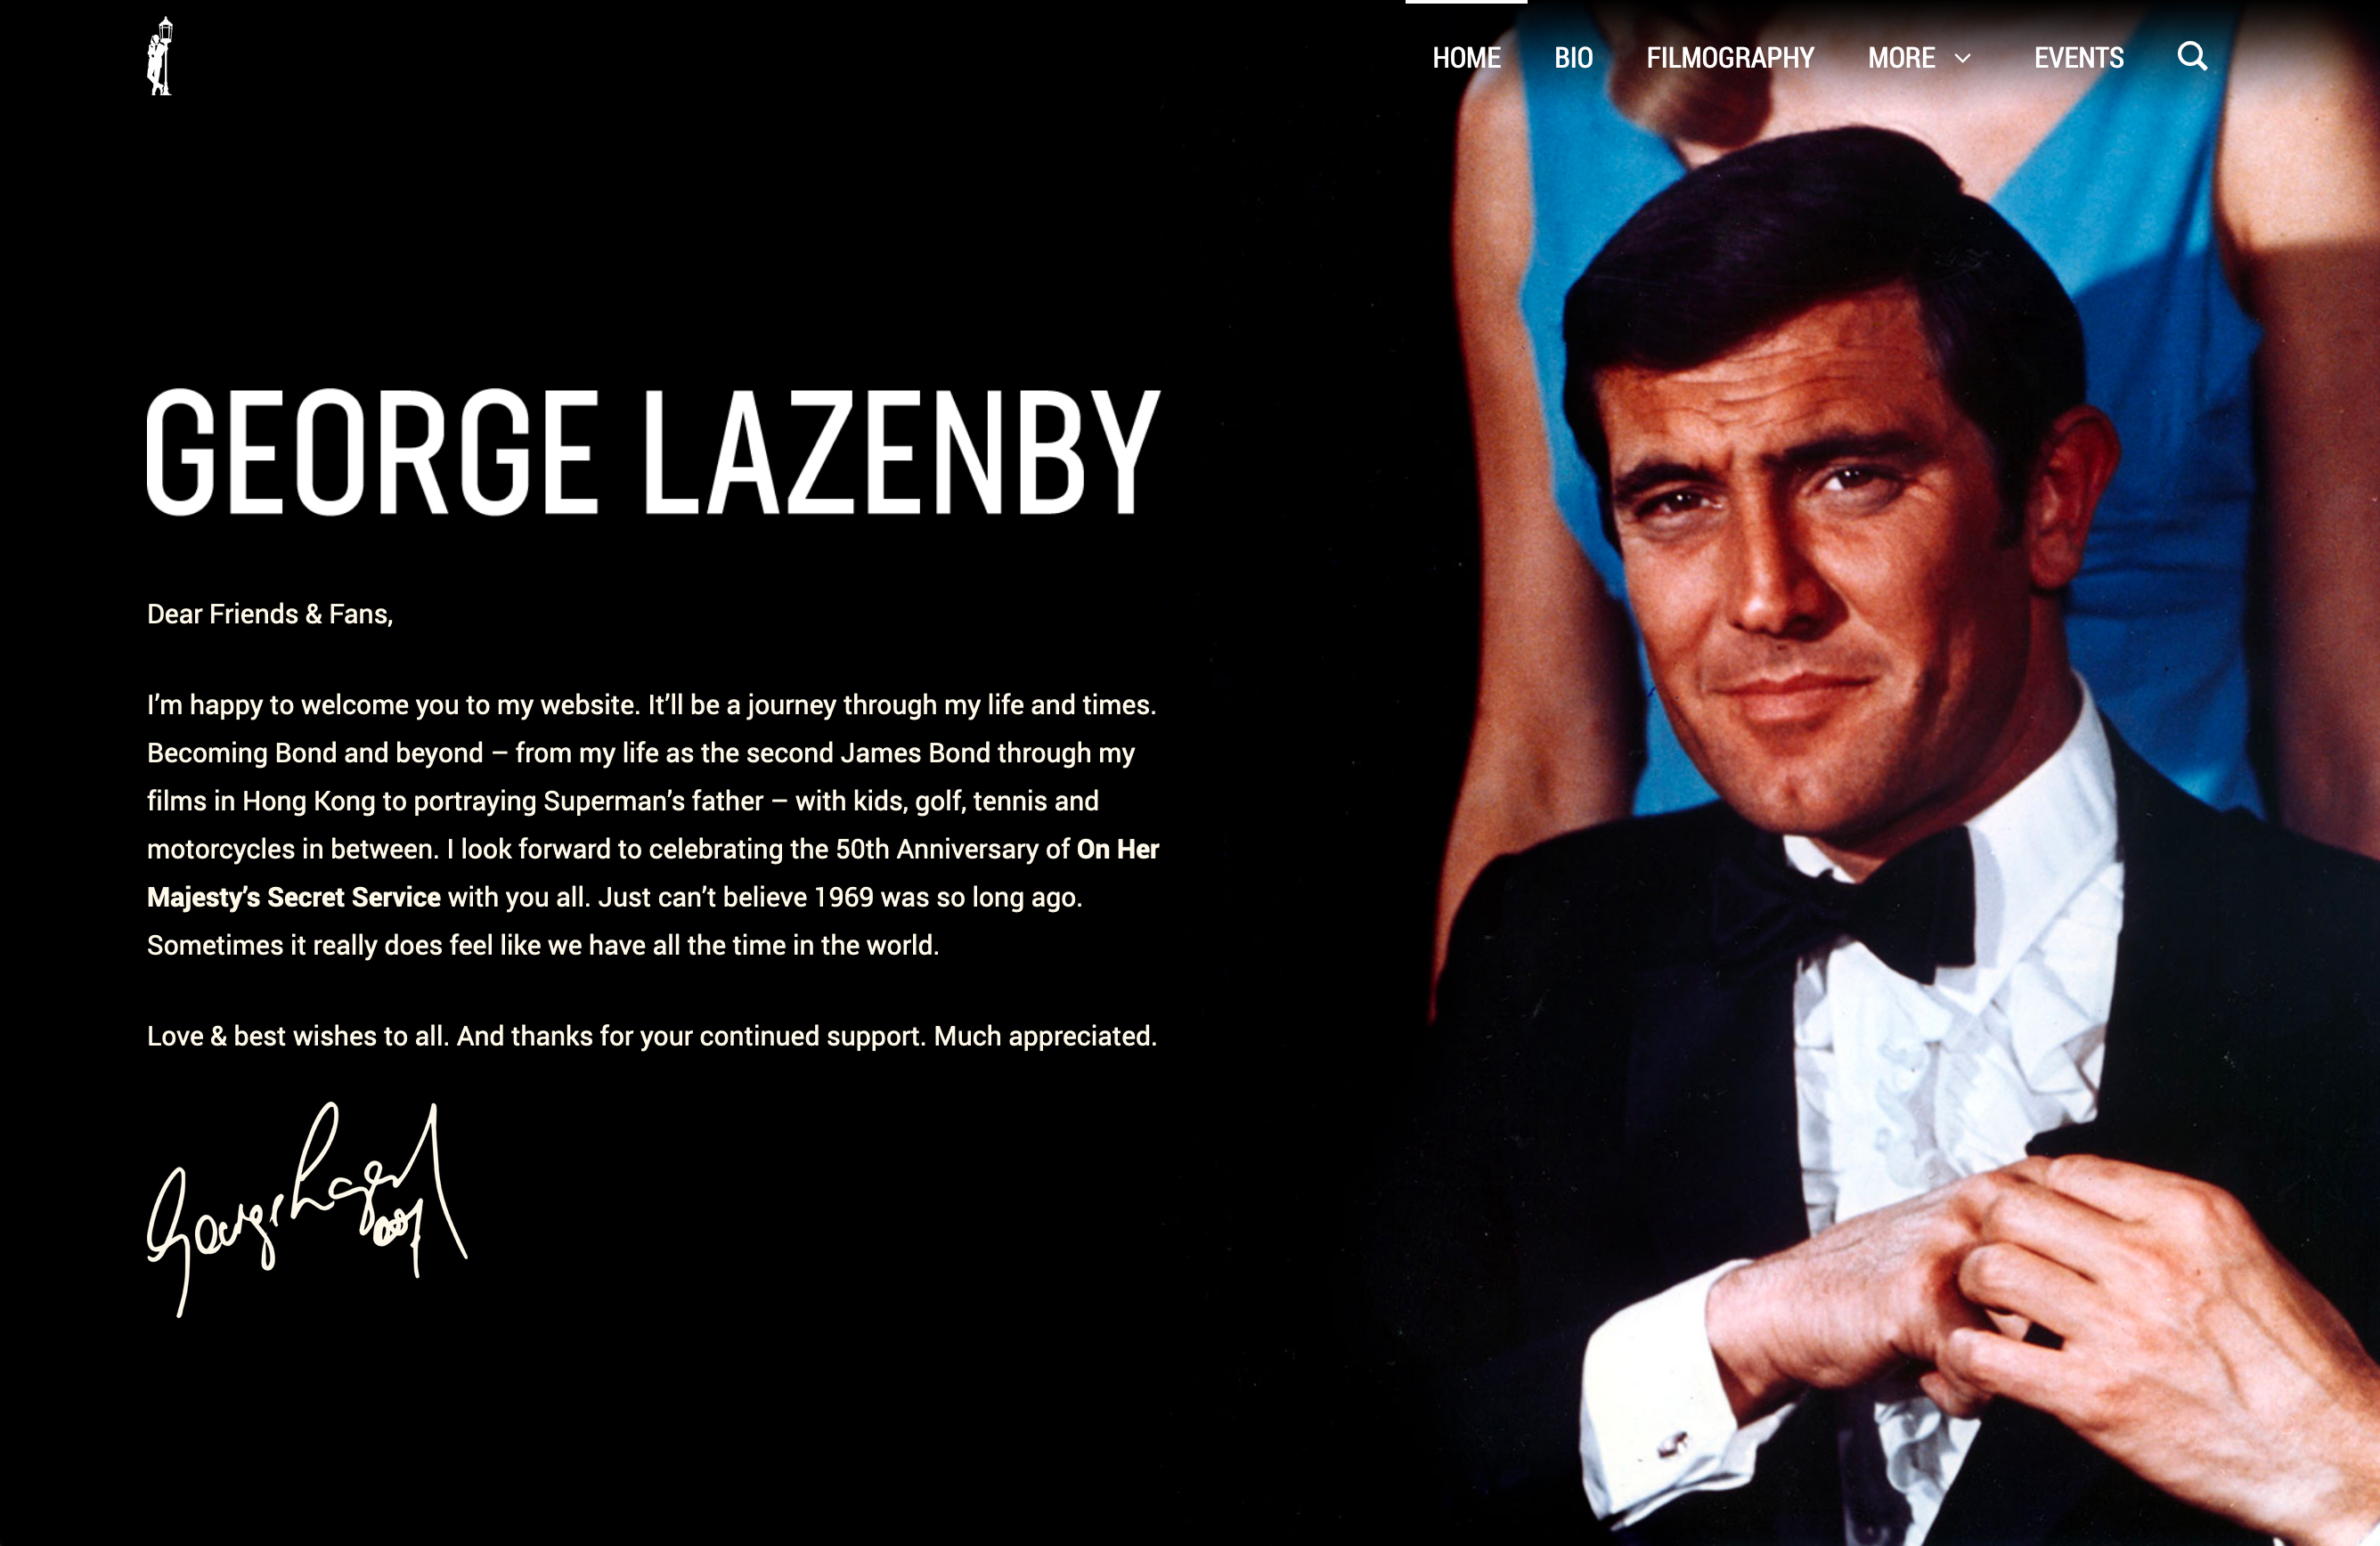 George Lazenby website homepage